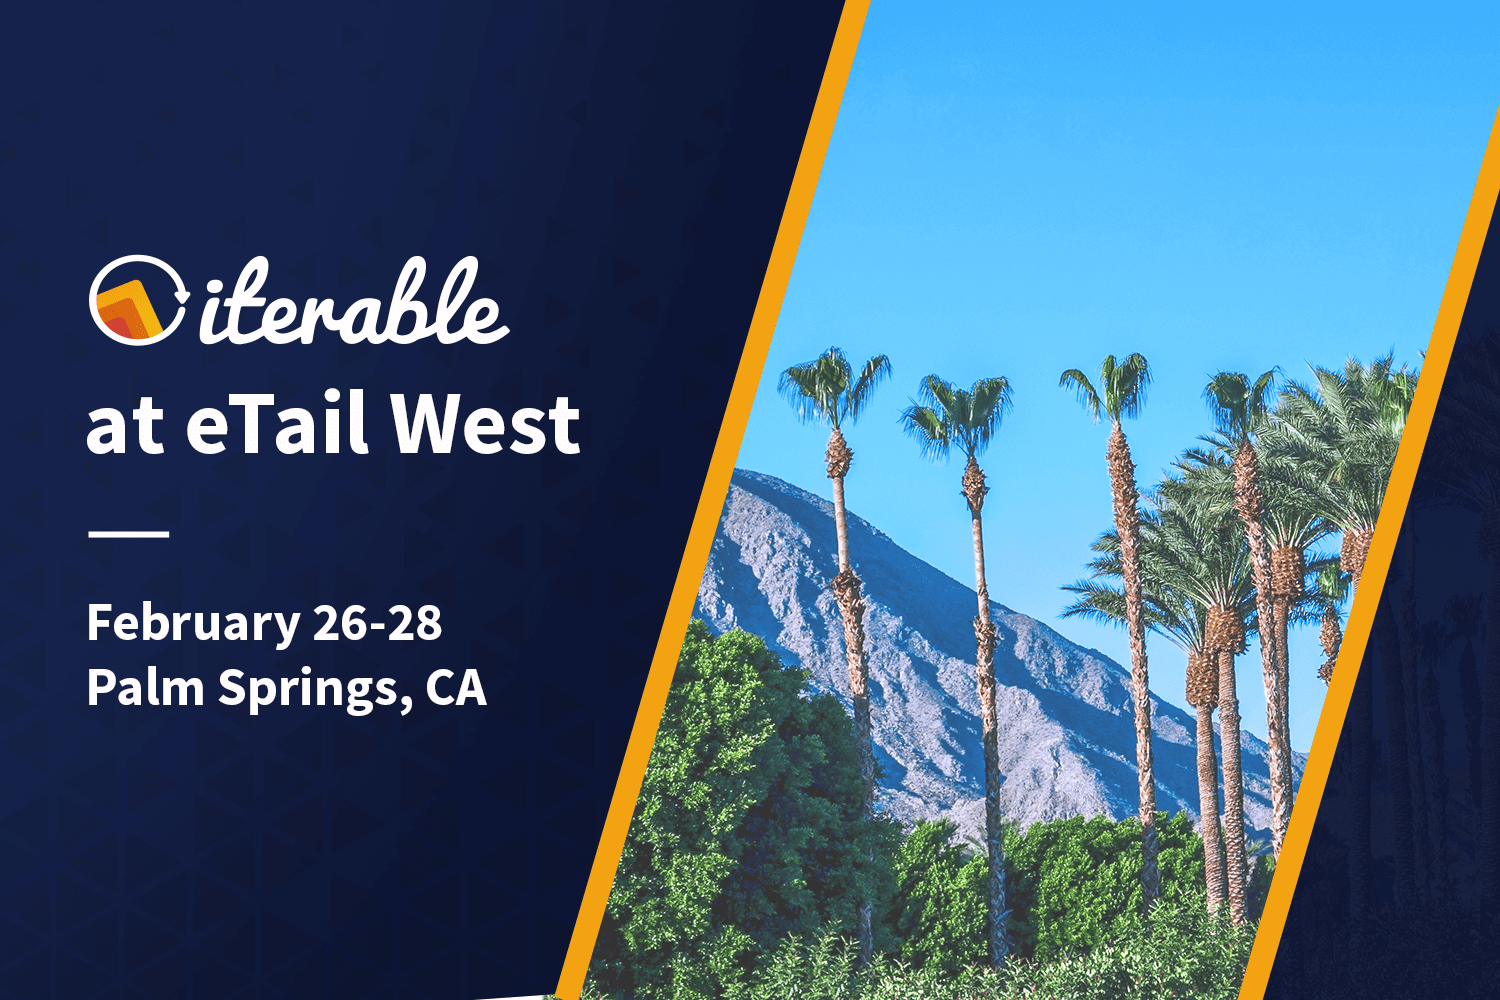 Iterable at eTail West 2018: February 26-28 in Palm Springs, CA